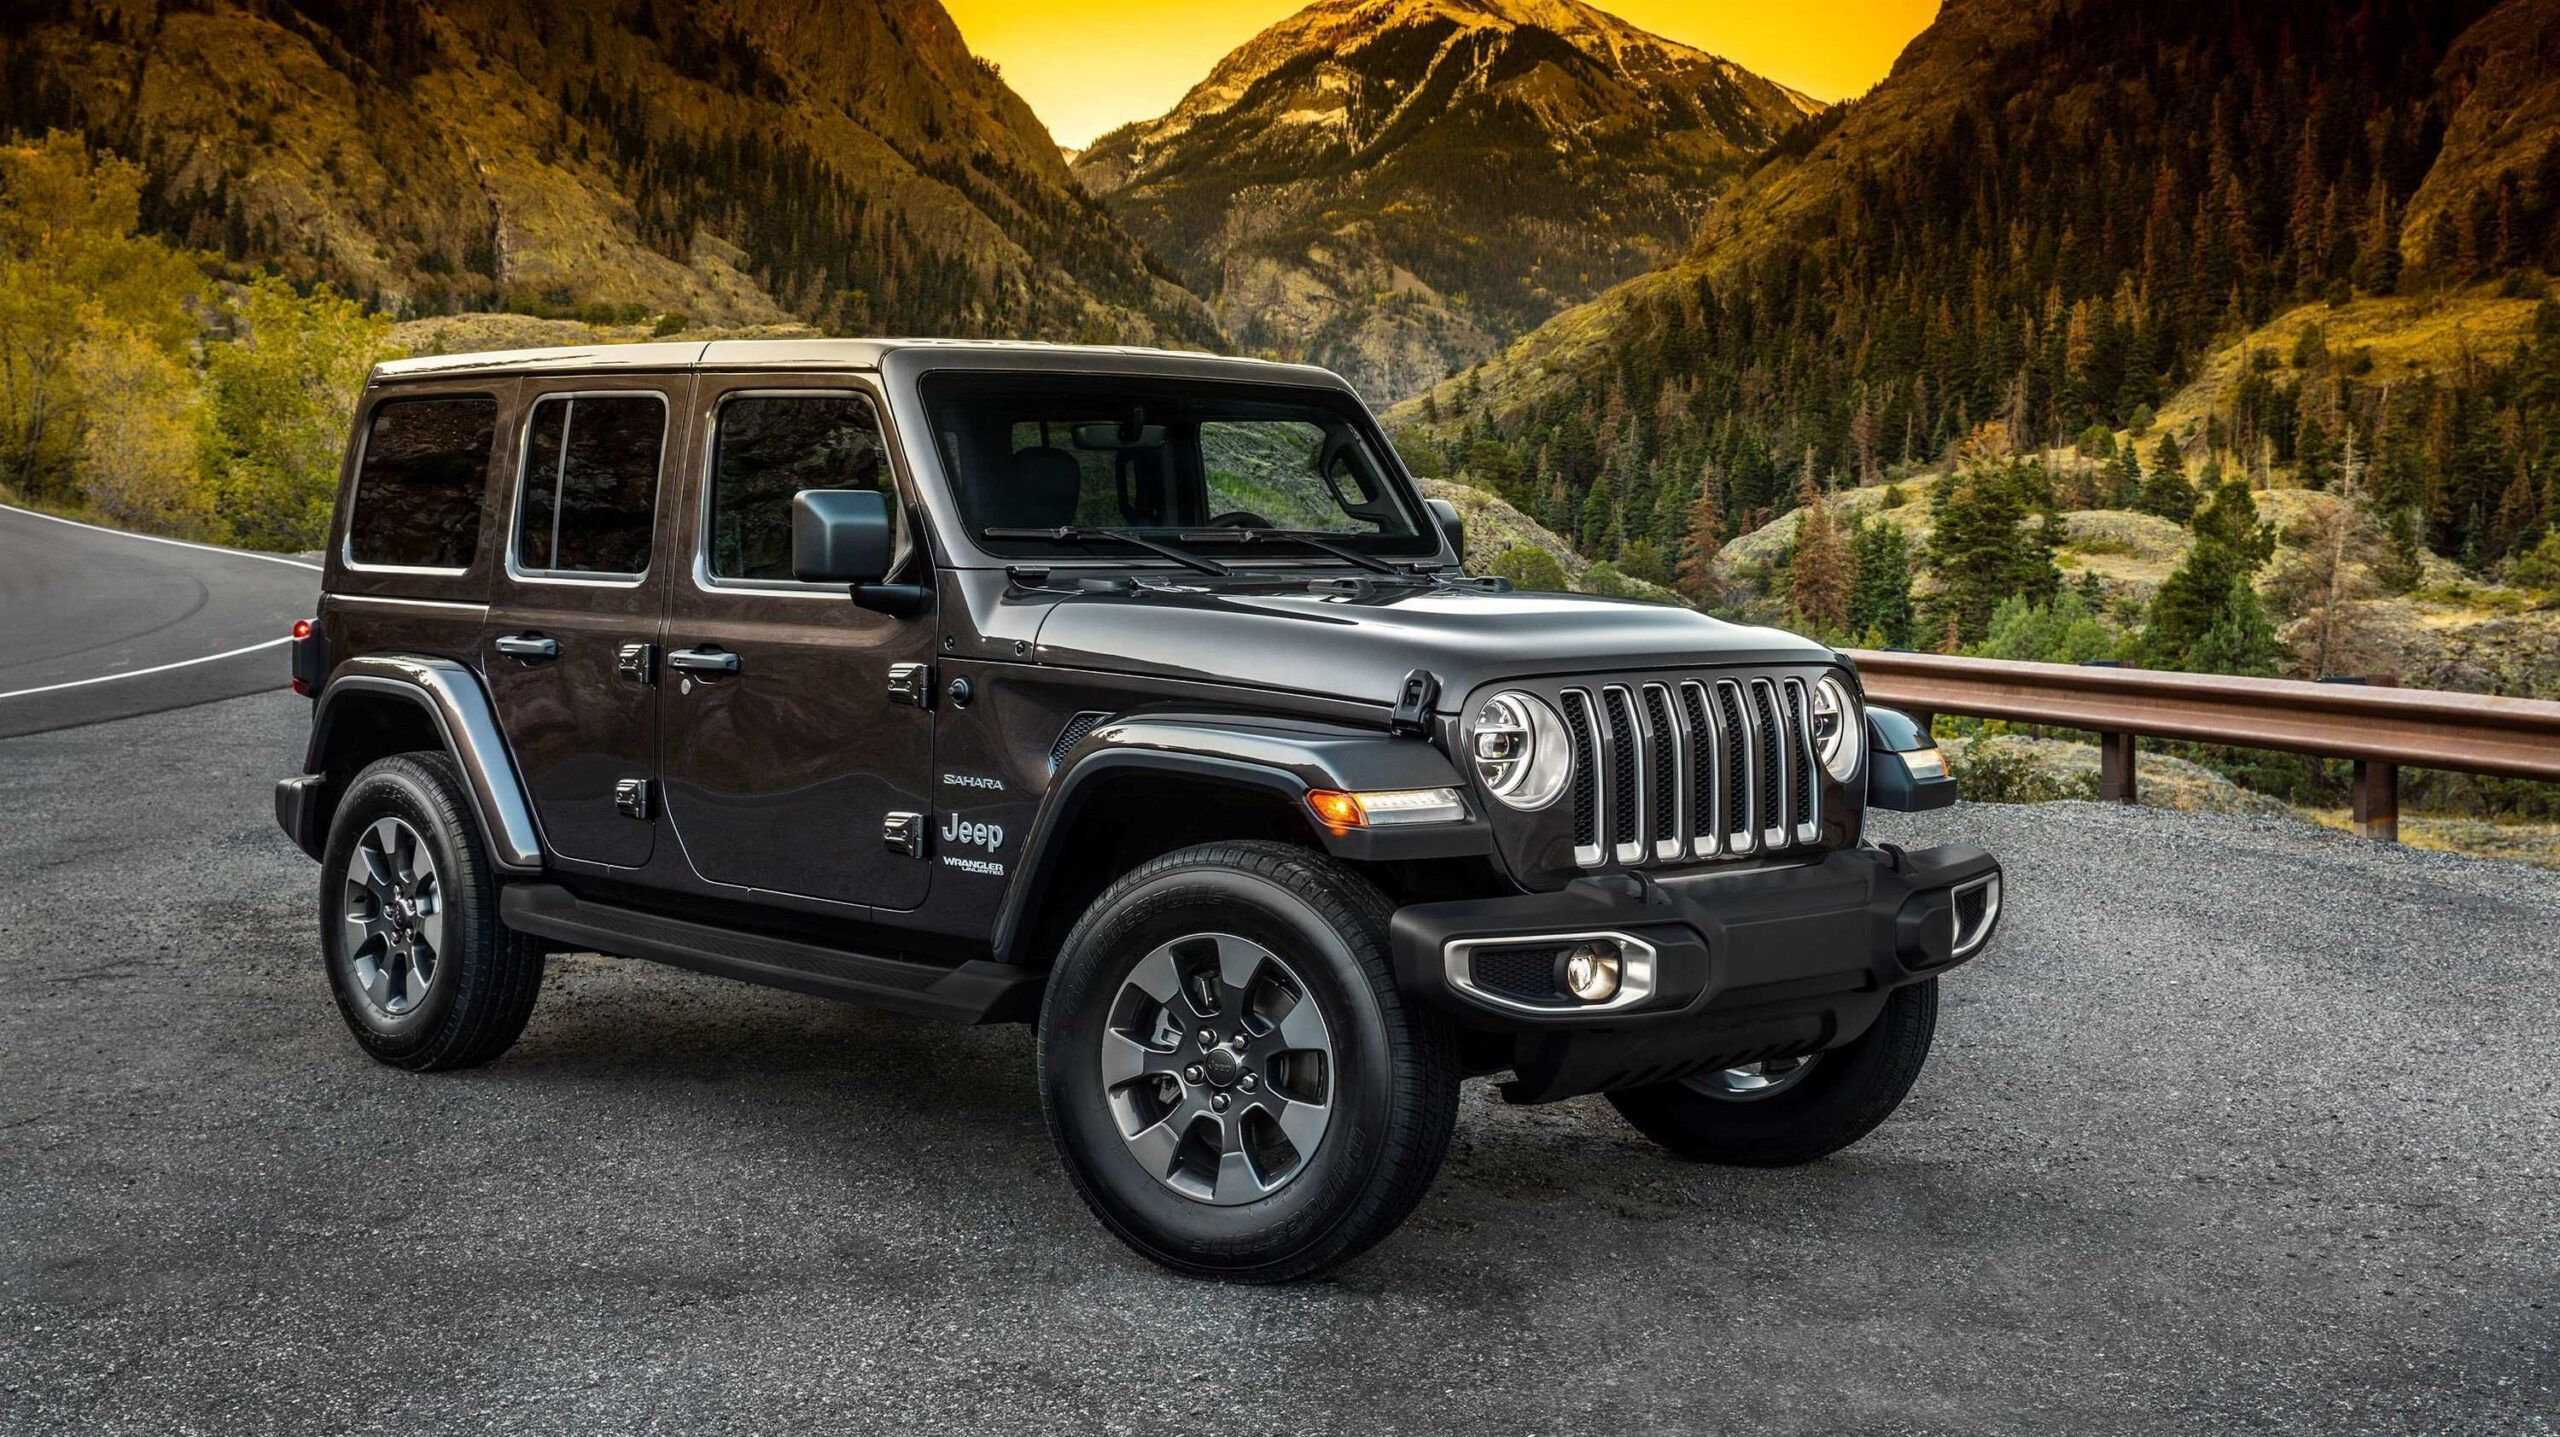 2020 Jeep Jl Rumors Engine Check More At Https Blog Dailymaza Me